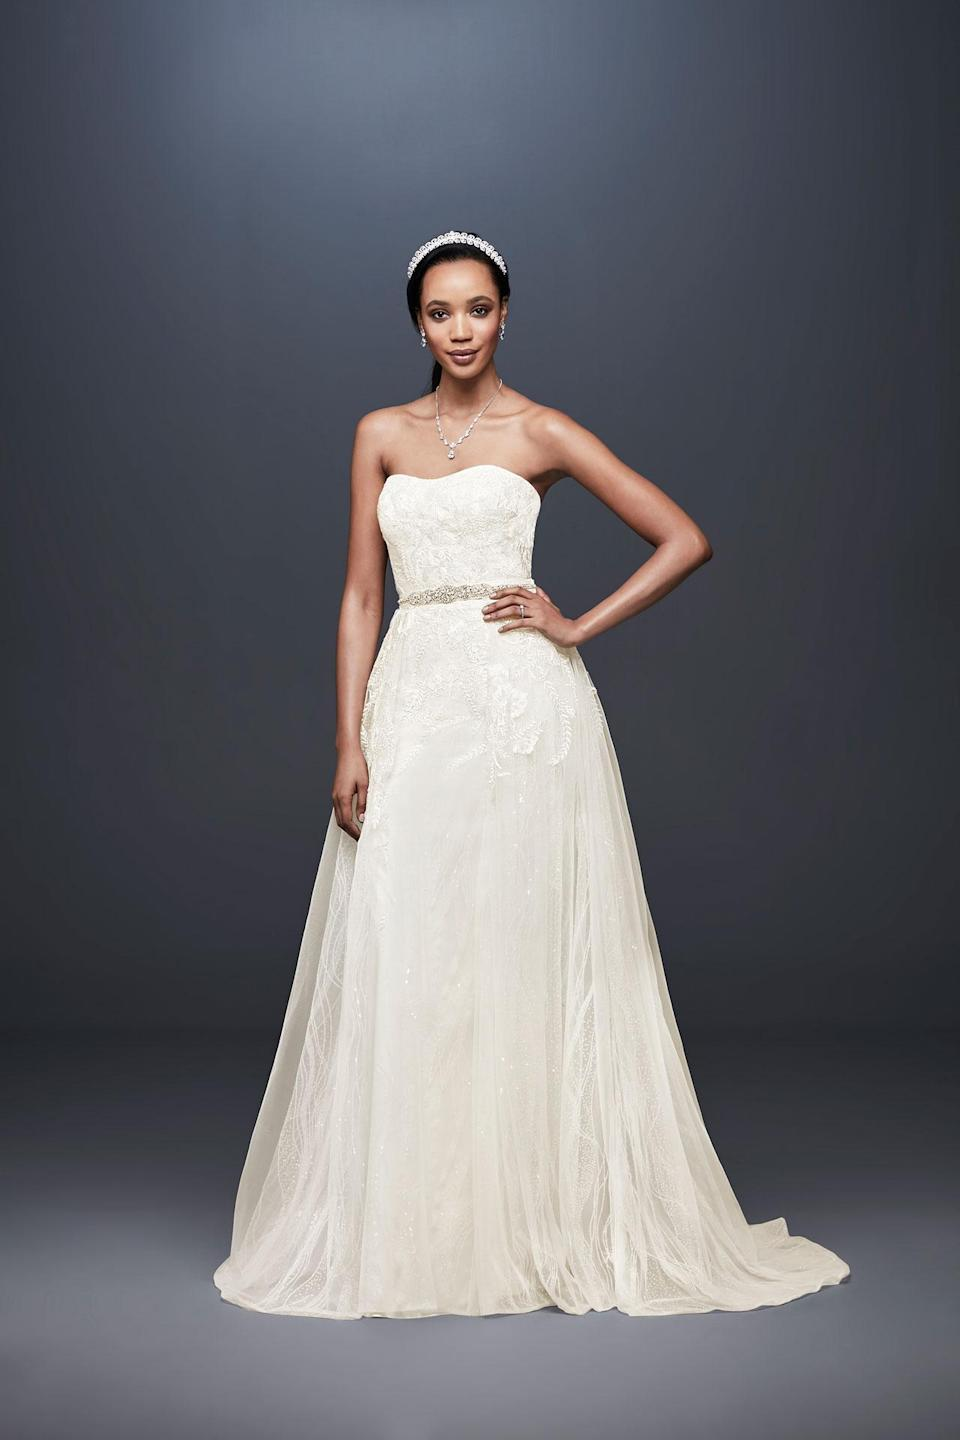 <p>Strapless embroidered dress. (Photo: Courtesy of David's Bridal) </p>